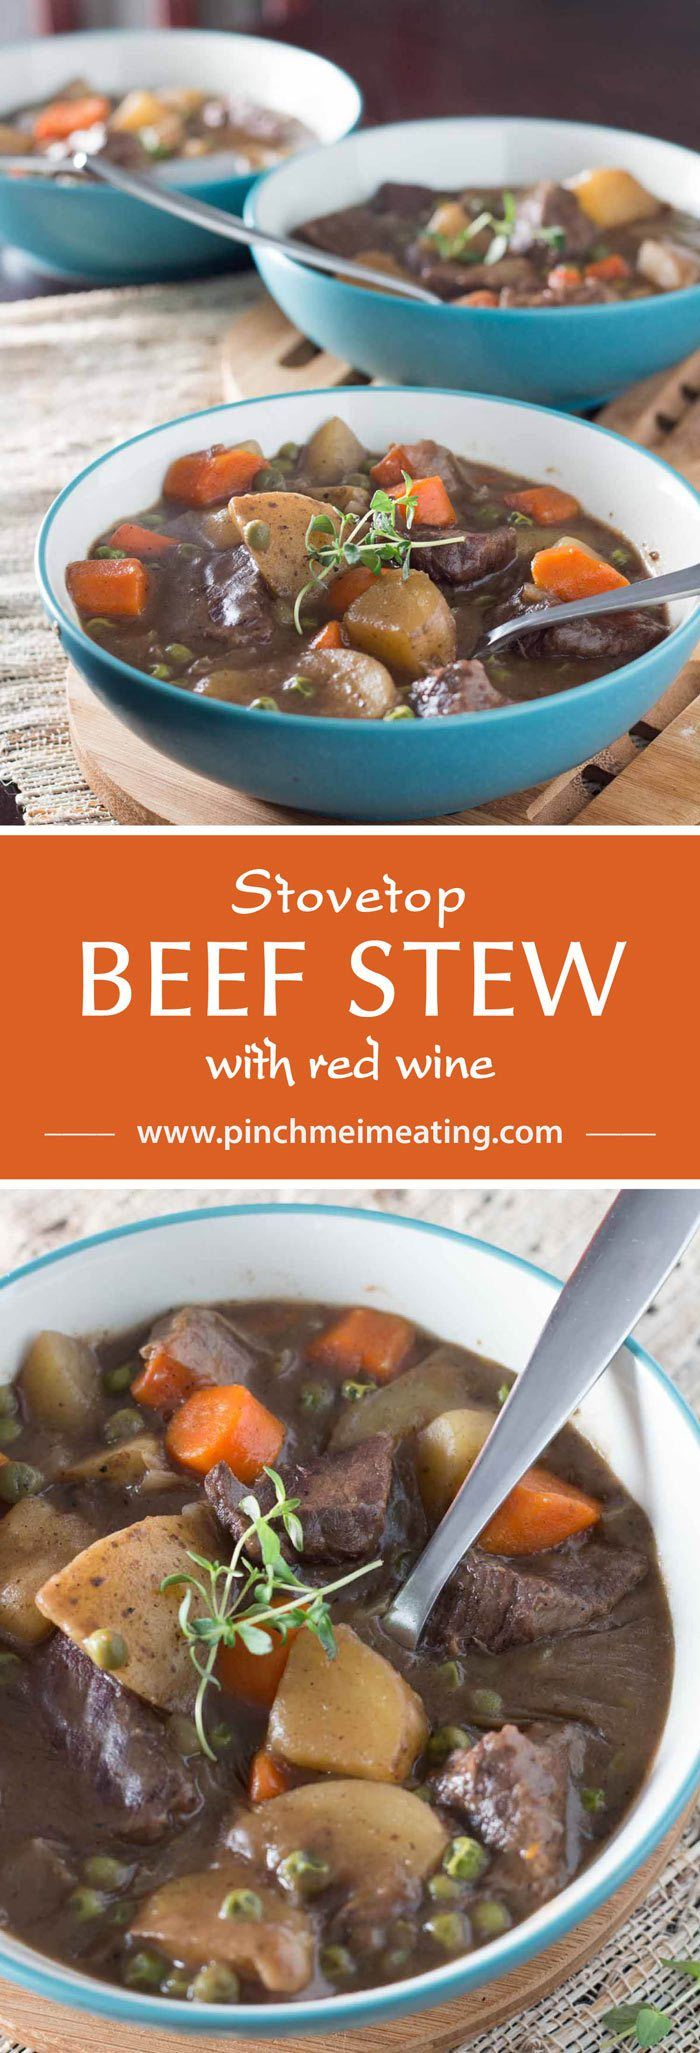 Photo of Easy Stove Top Beef Stew with Red Wine | Pinch me, I'm eatin…